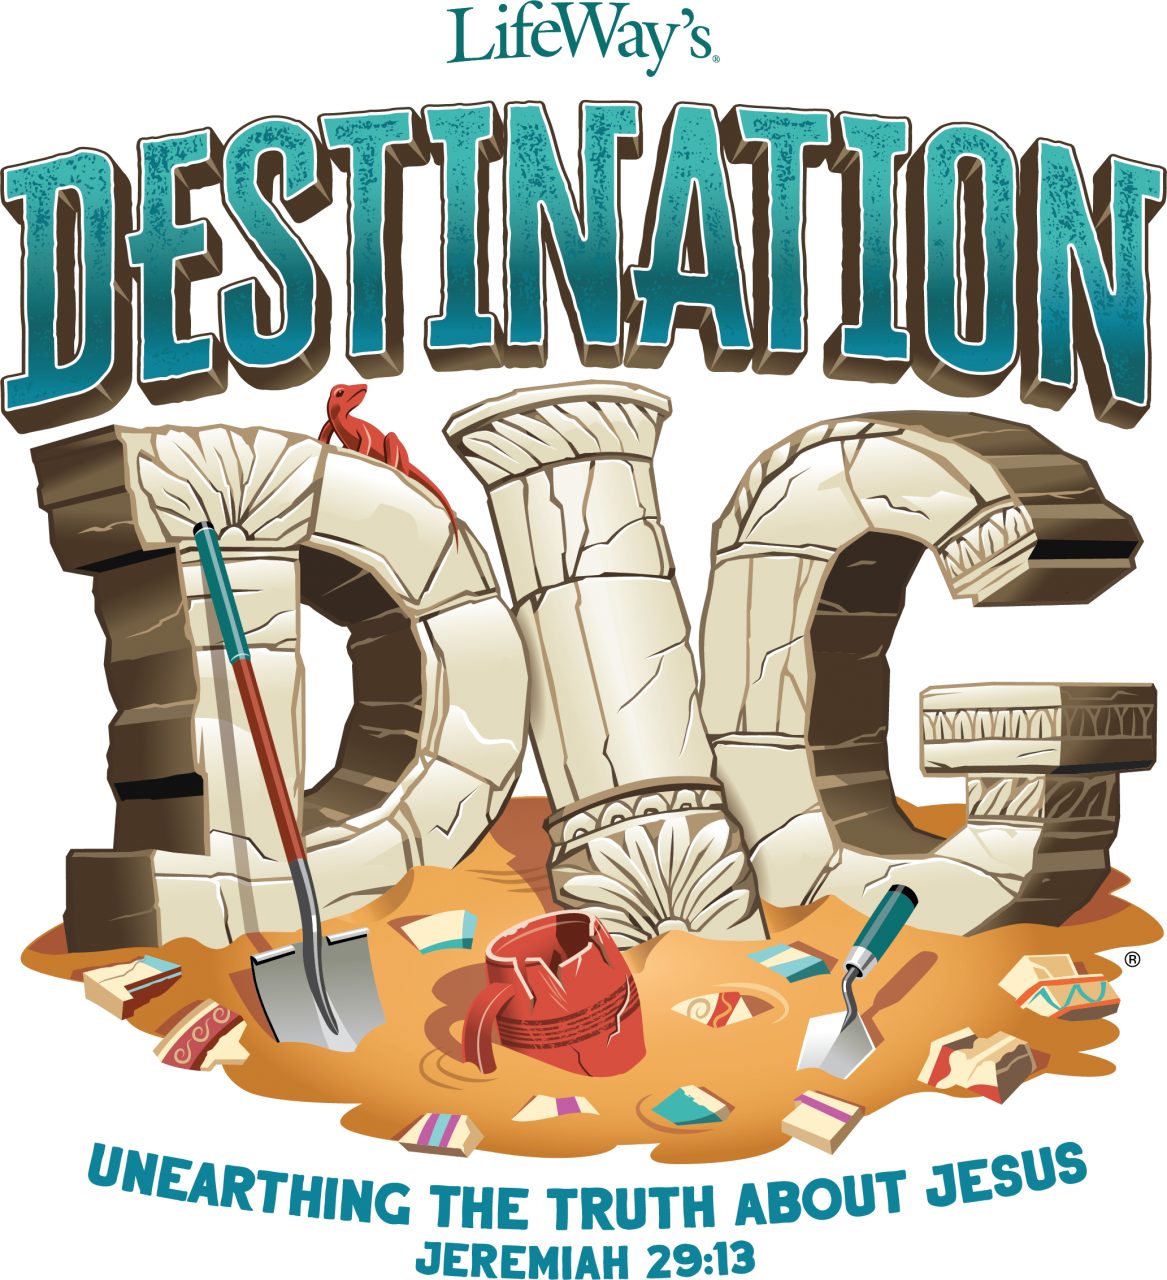 2021 VBS archaeology theme leads kids to unearth truth about Jesus